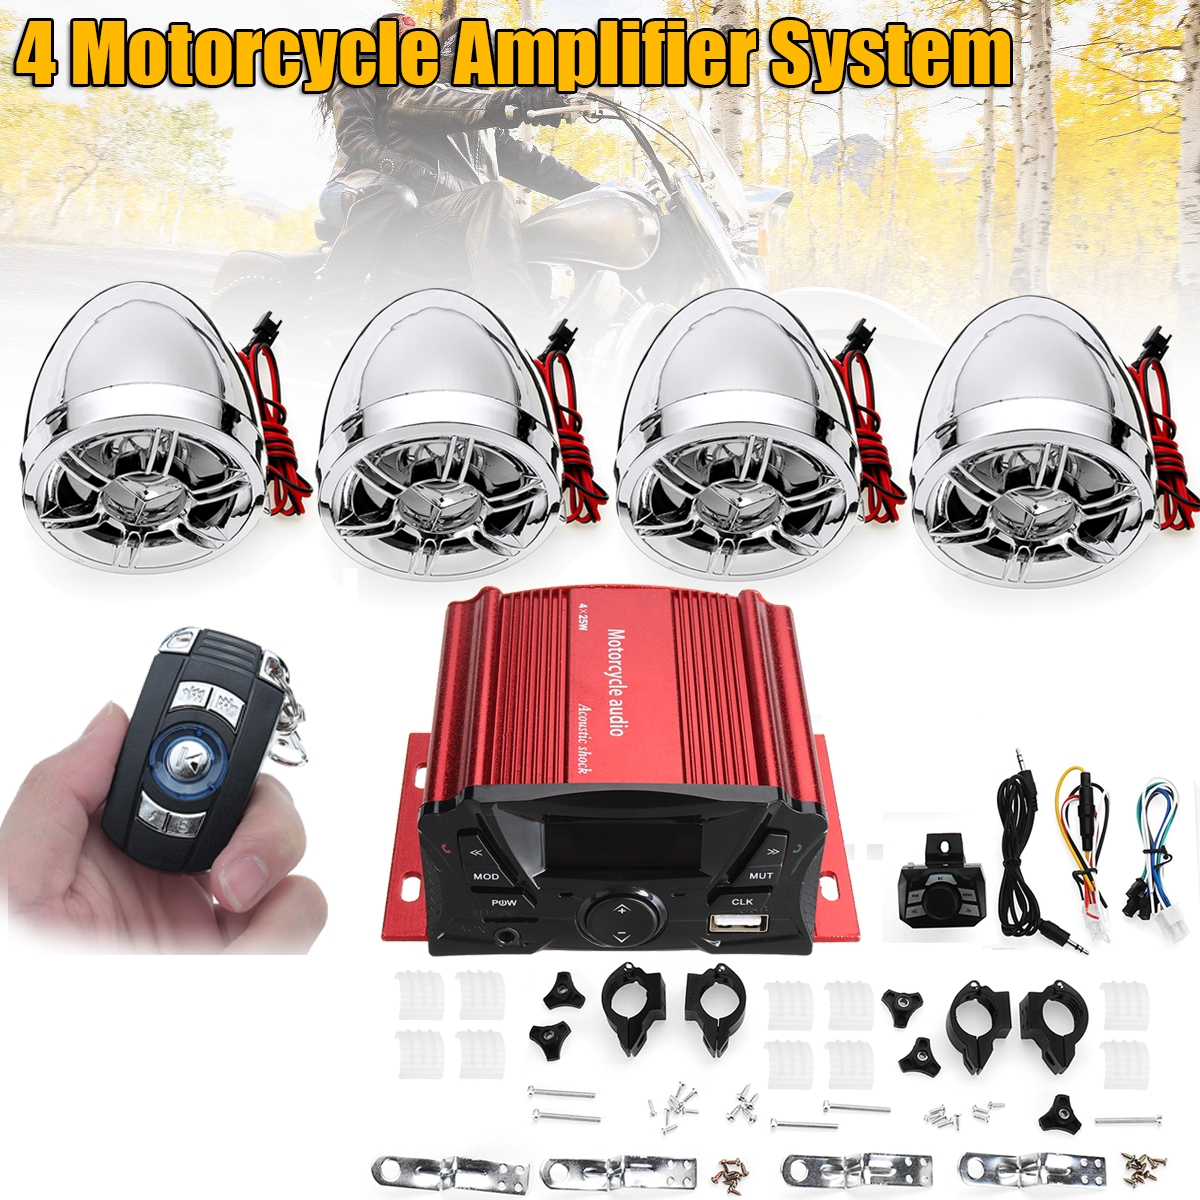 Universal Motorcycle Amplifier System Motorcycle Speaker Horns Motorcycle Audio Suit With USB Bluetooth Wireless Remote Control